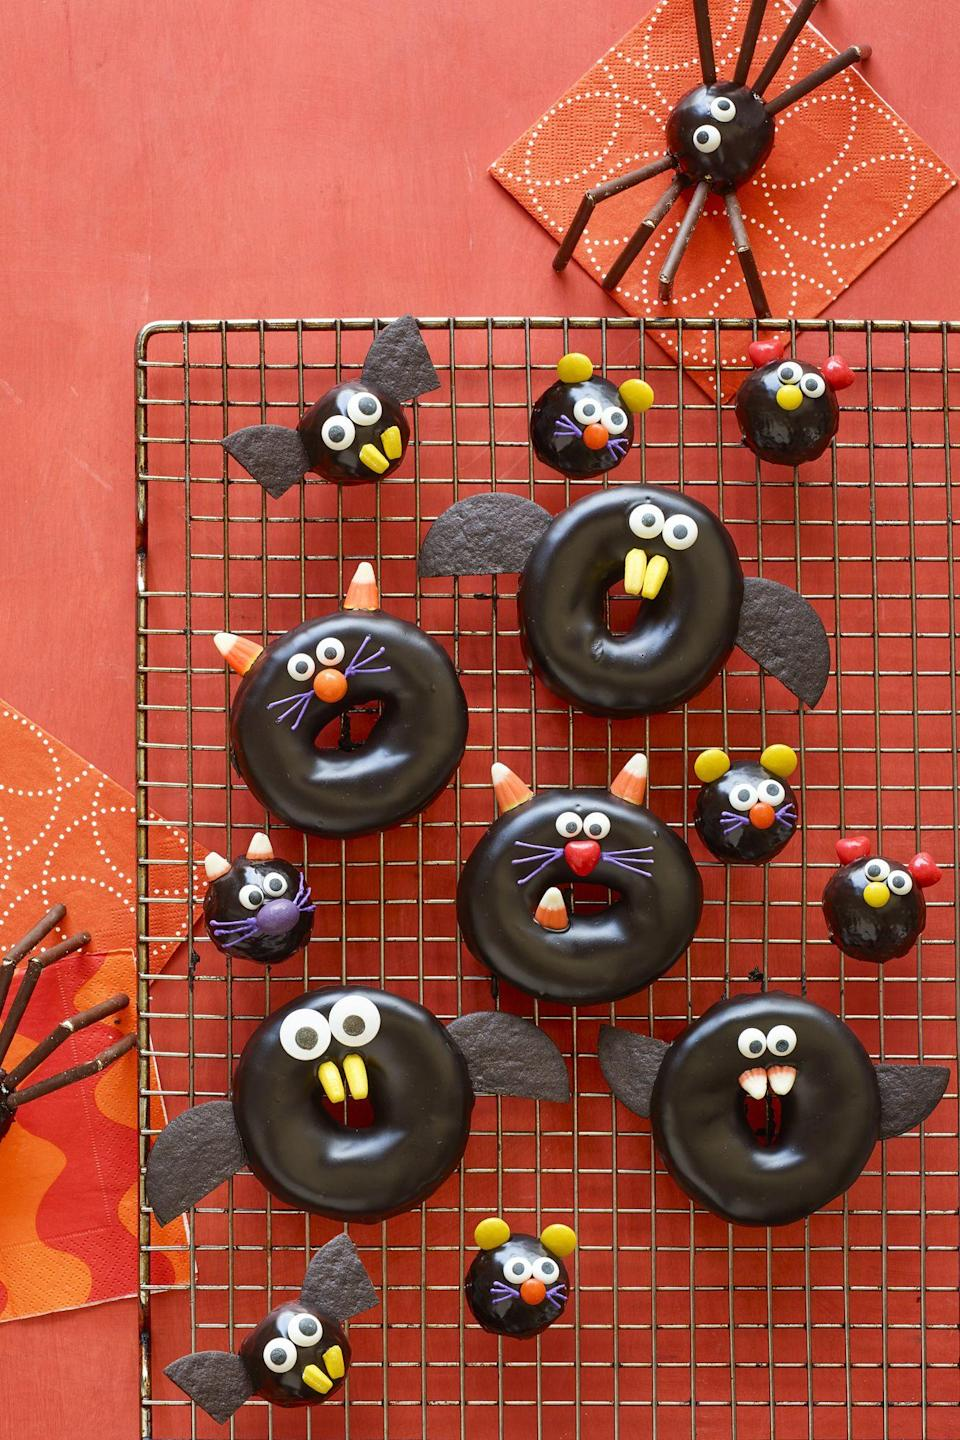 "<p>These chocolate-covered Halloween treats double as a<a href=""https://www.womansday.com/home/crafts-projects/g2490/halloween-kids-crafts/"" rel=""nofollow noopener"" target=""_blank"" data-ylk=""slk:kid's craft"" class=""link rapid-noclick-resp""> kid's craft</a>.</p><p><strong><a href=""https://www.womansday.com/food-recipes/food-drinks/a23460042/black-cat-bat-spider-and-mice-doughnuts-recipe/"" rel=""nofollow noopener"" target=""_blank"" data-ylk=""slk:Get the recipe"" class=""link rapid-noclick-resp"">Get the recipe</a>. </strong></p>"